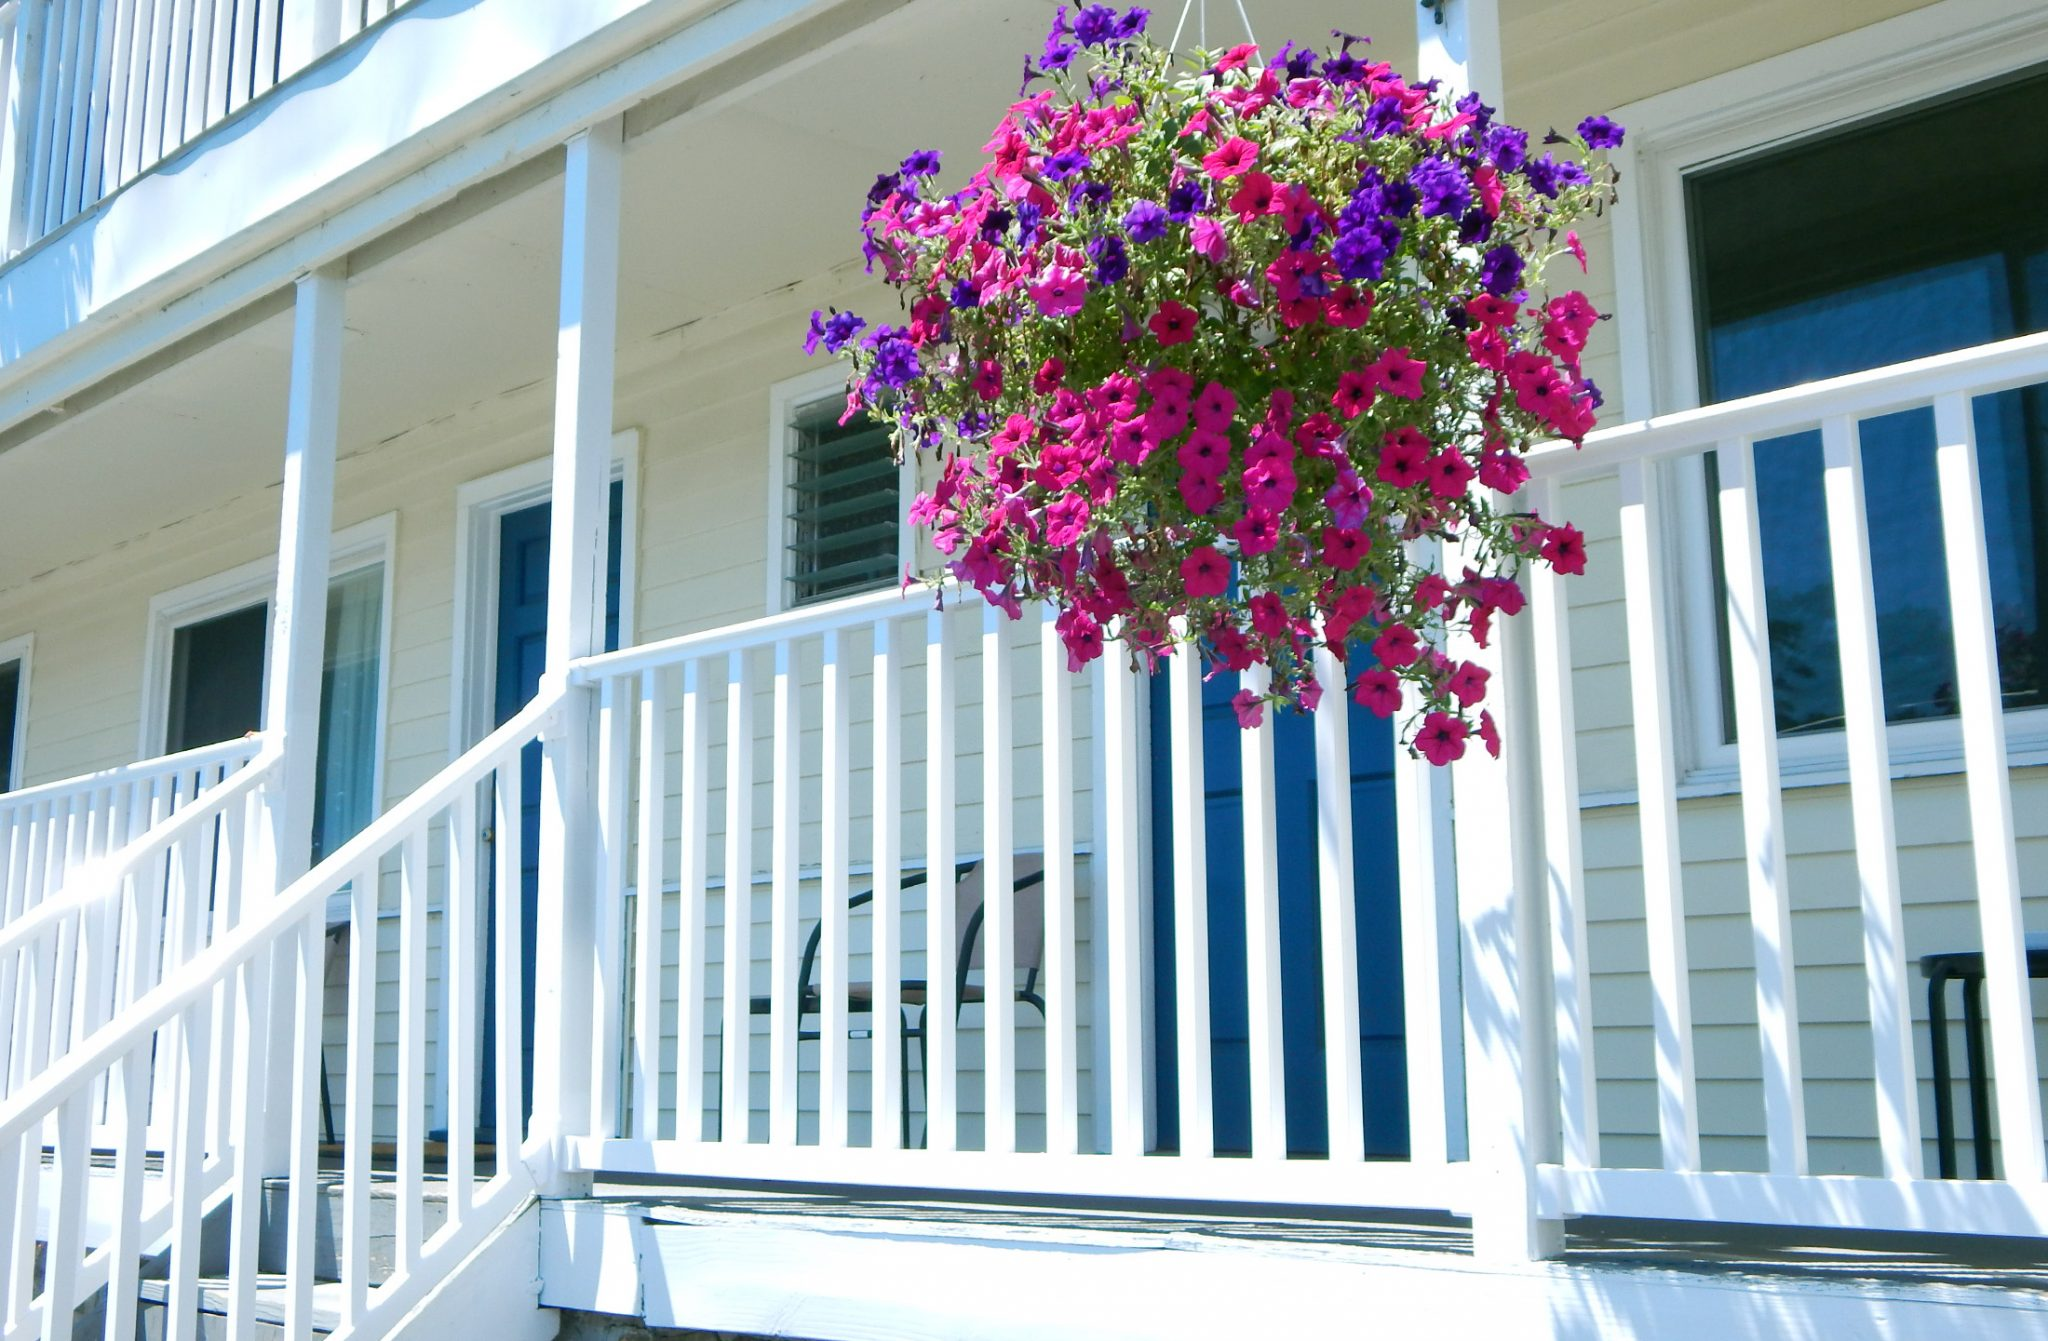 Outside porch with flowers